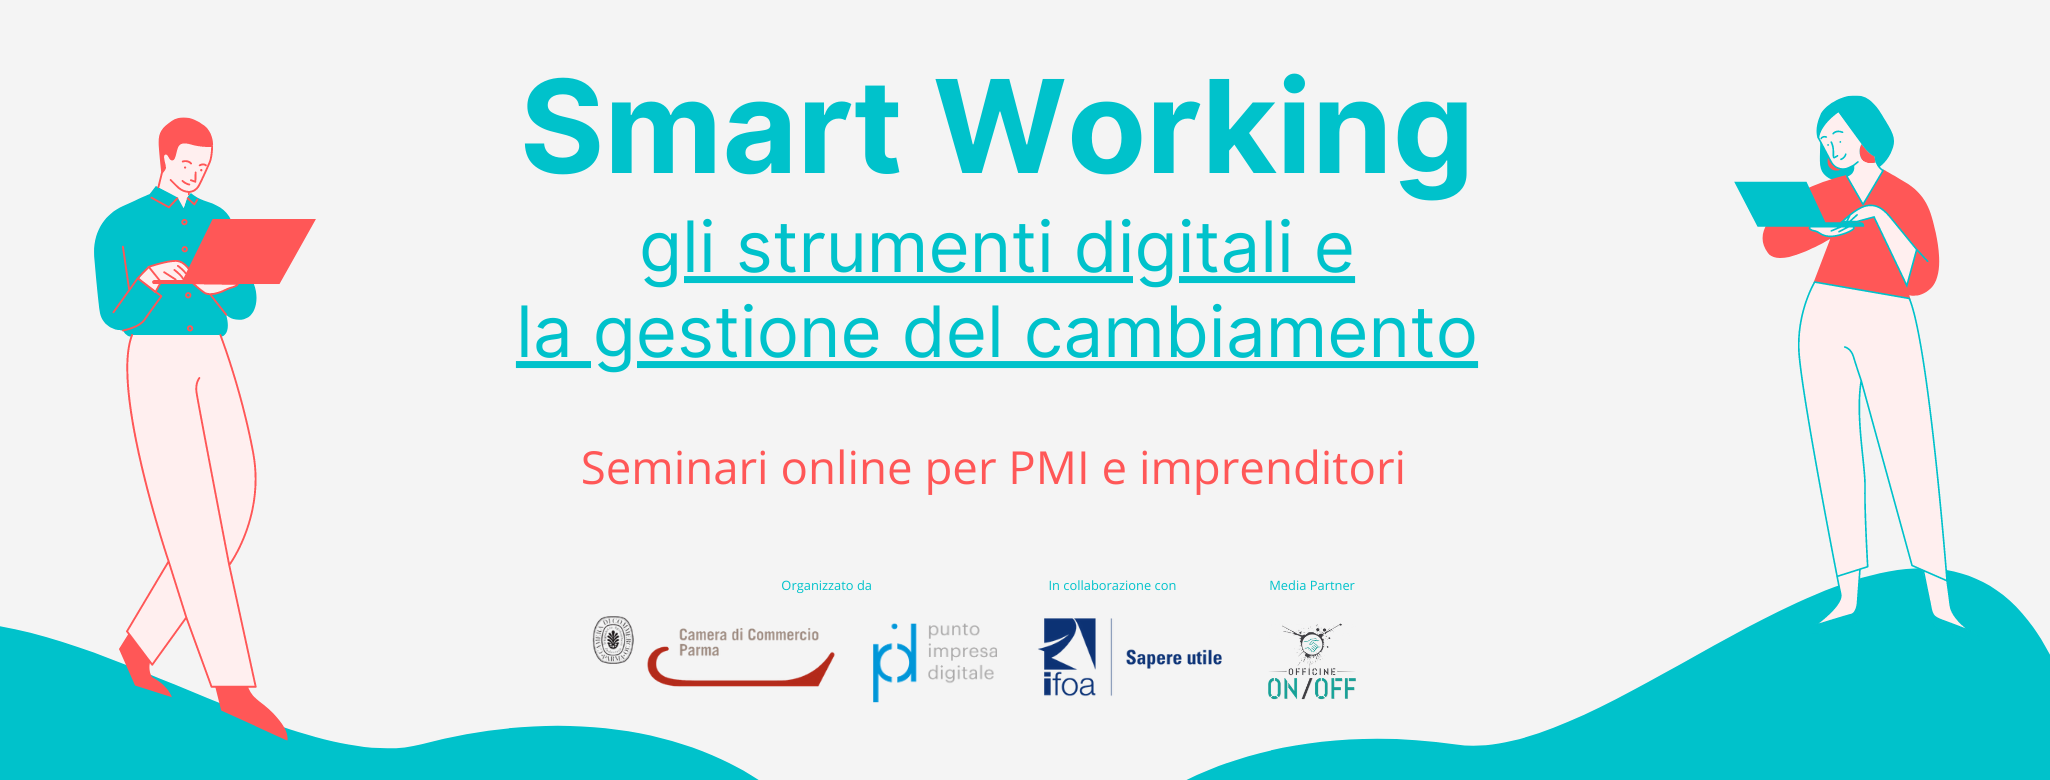 /uploaded/Generale/Immagini/news 2021/parma(1).png